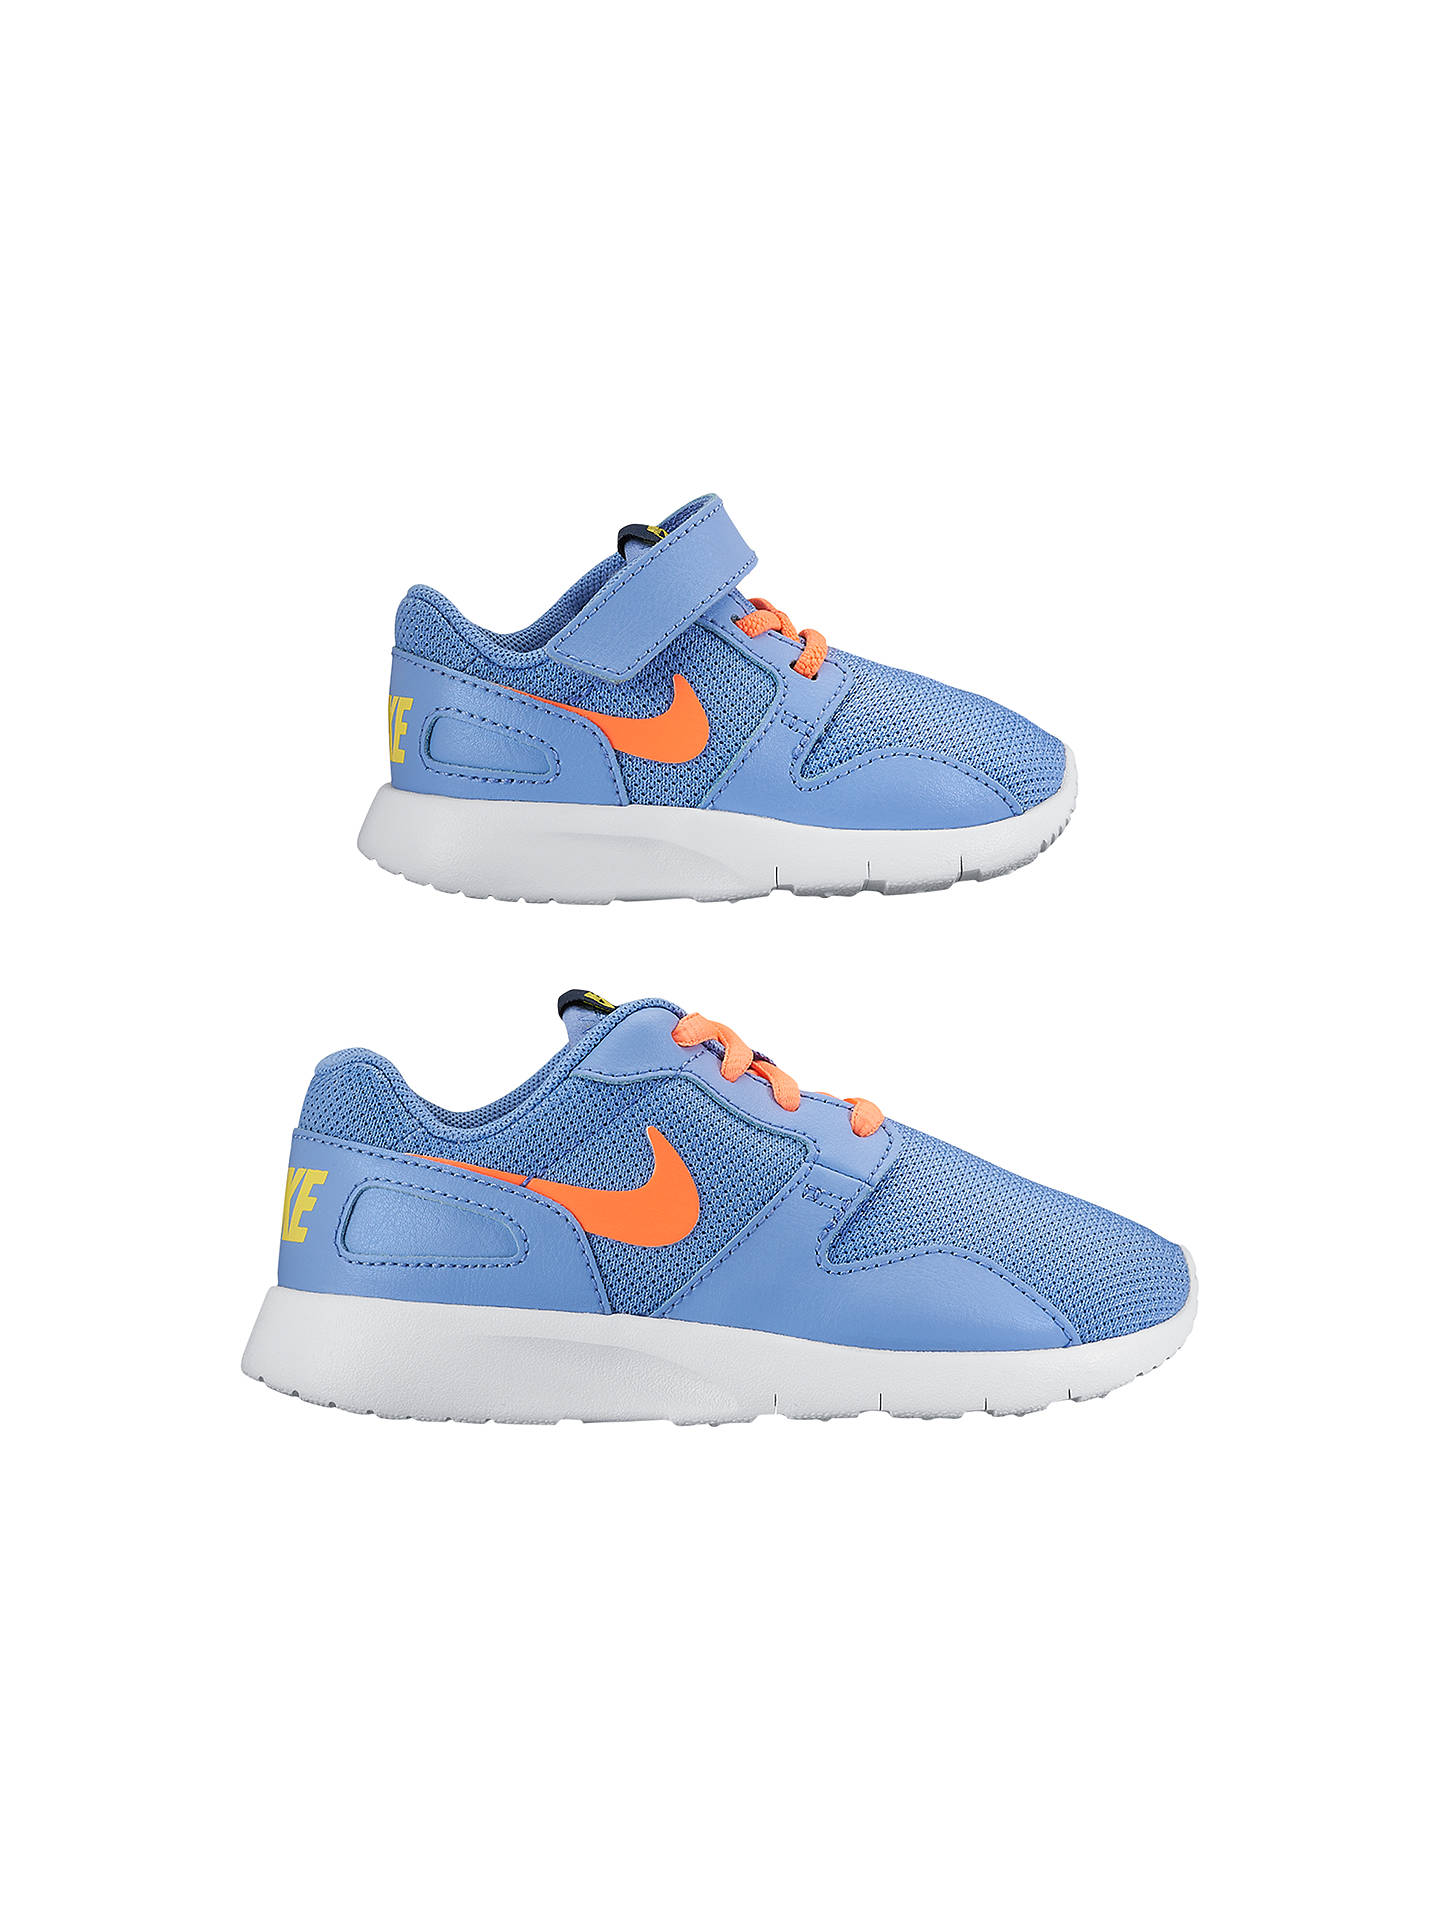 buy online bf0f8 82222 Buy Nike Kaishi Sports Trainers, Blue Orange, 5 Online at johnlewis.com ...